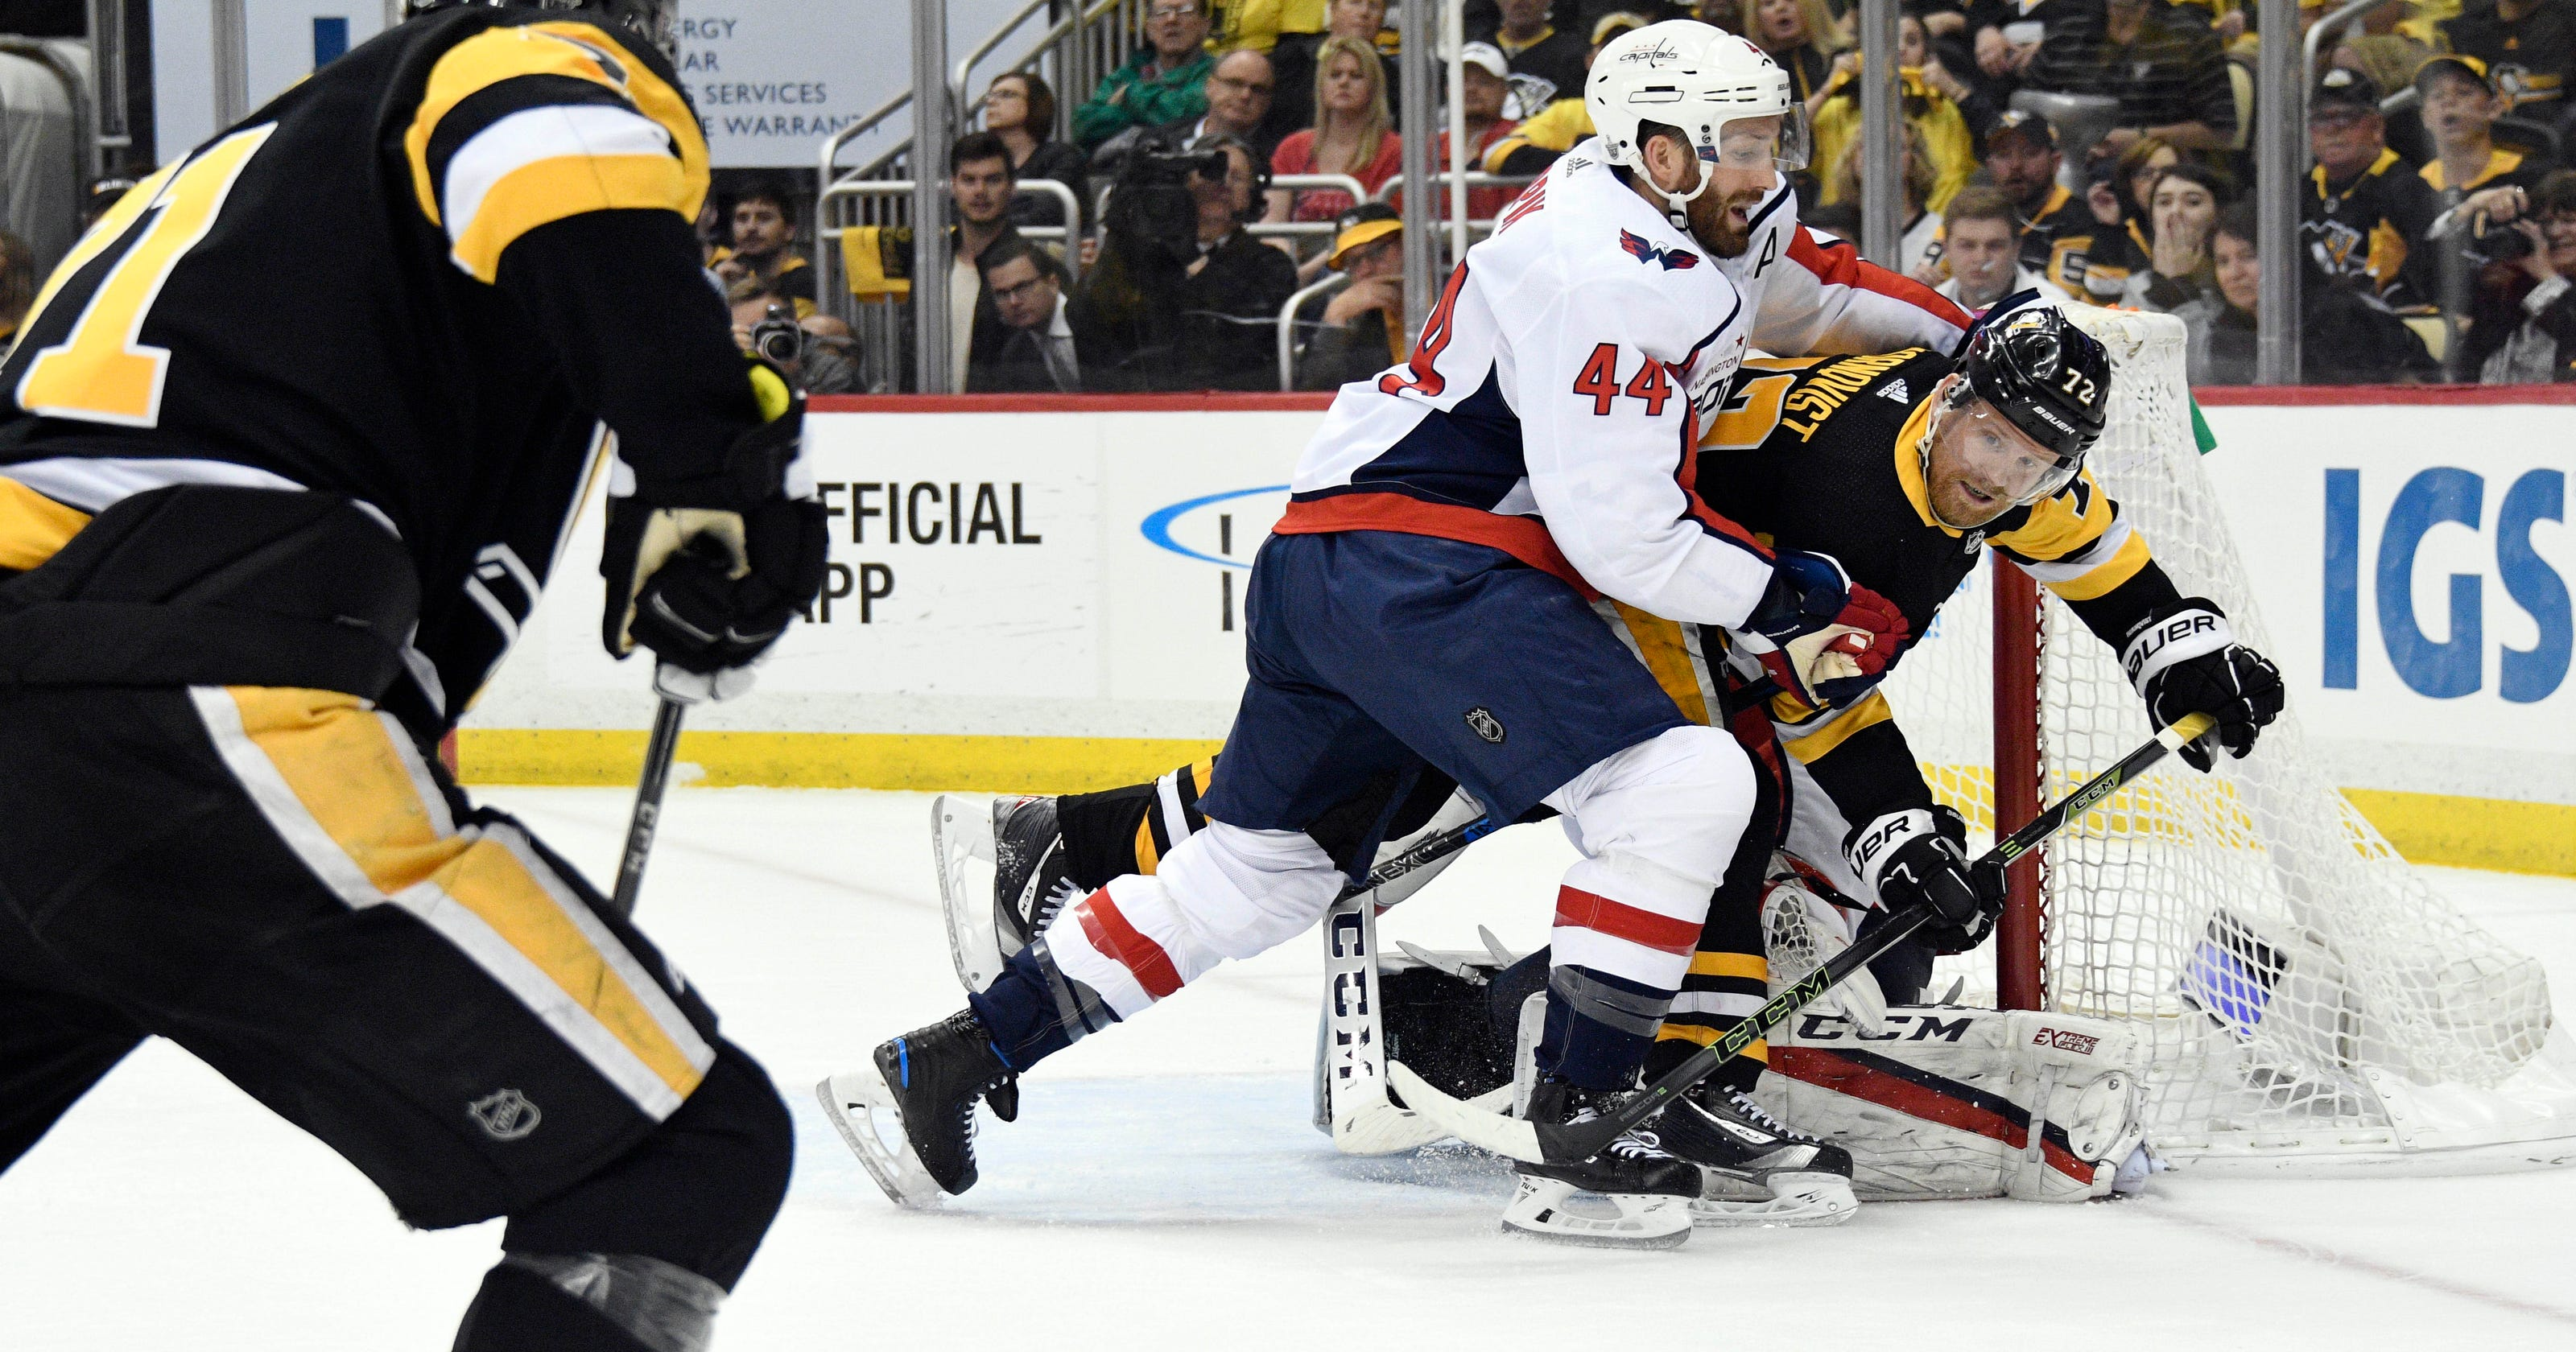 60c835ee0c7 NHL Playoffs  Penguins beneficiary of Game 4 goal review vs. Capitals